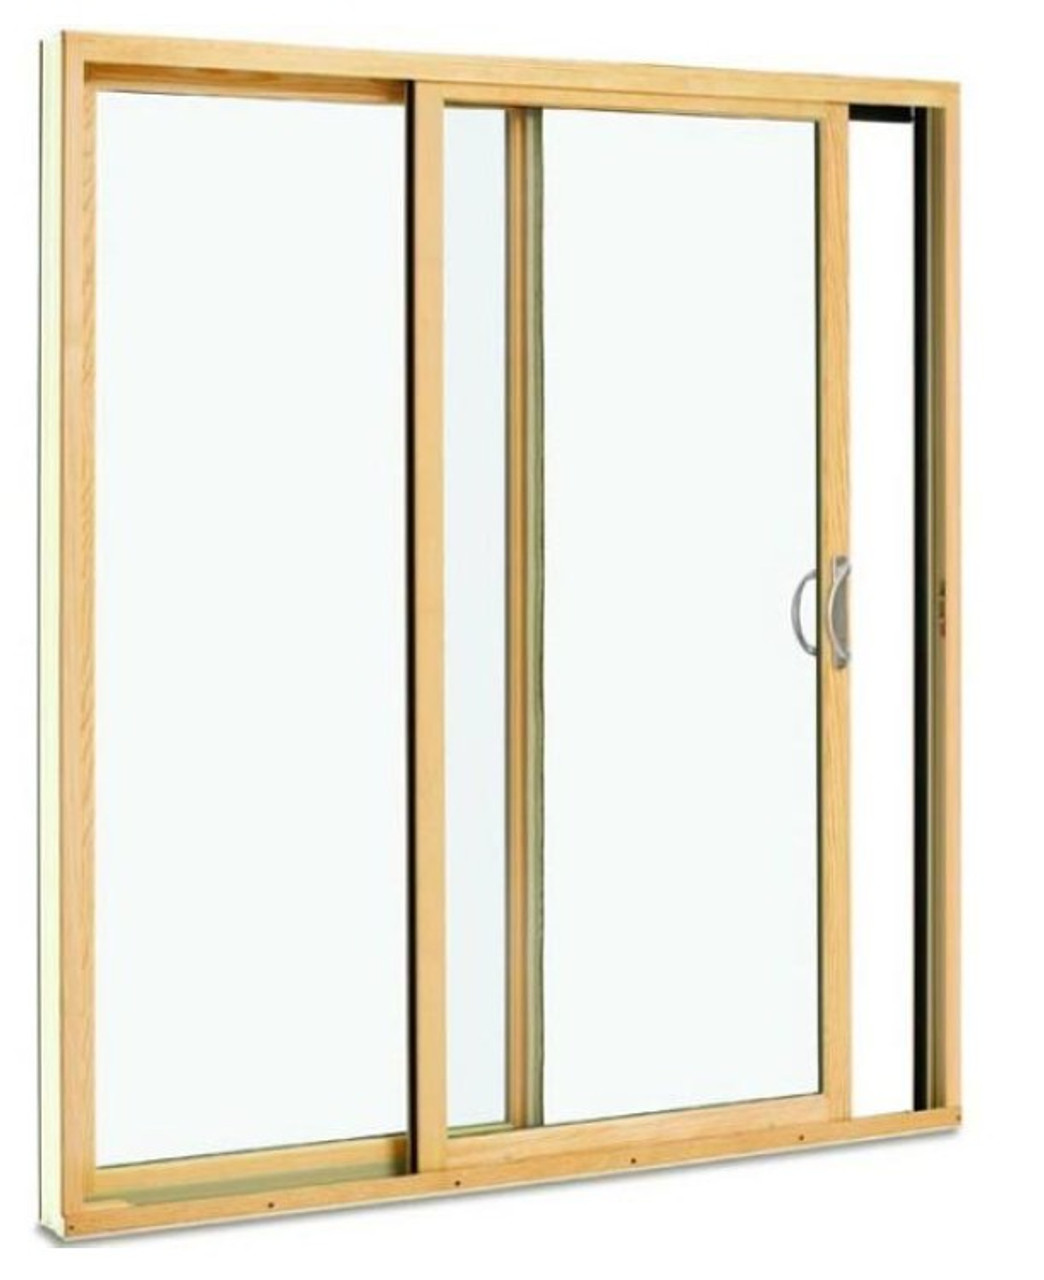 2-PANEL CP6 ROUGH OPENING= 5'11 1/2'' x 6' 9''h narrow style Sliding door /  LOW-E 270 GLASS/white blinds in the glass  color of door bronze clad,